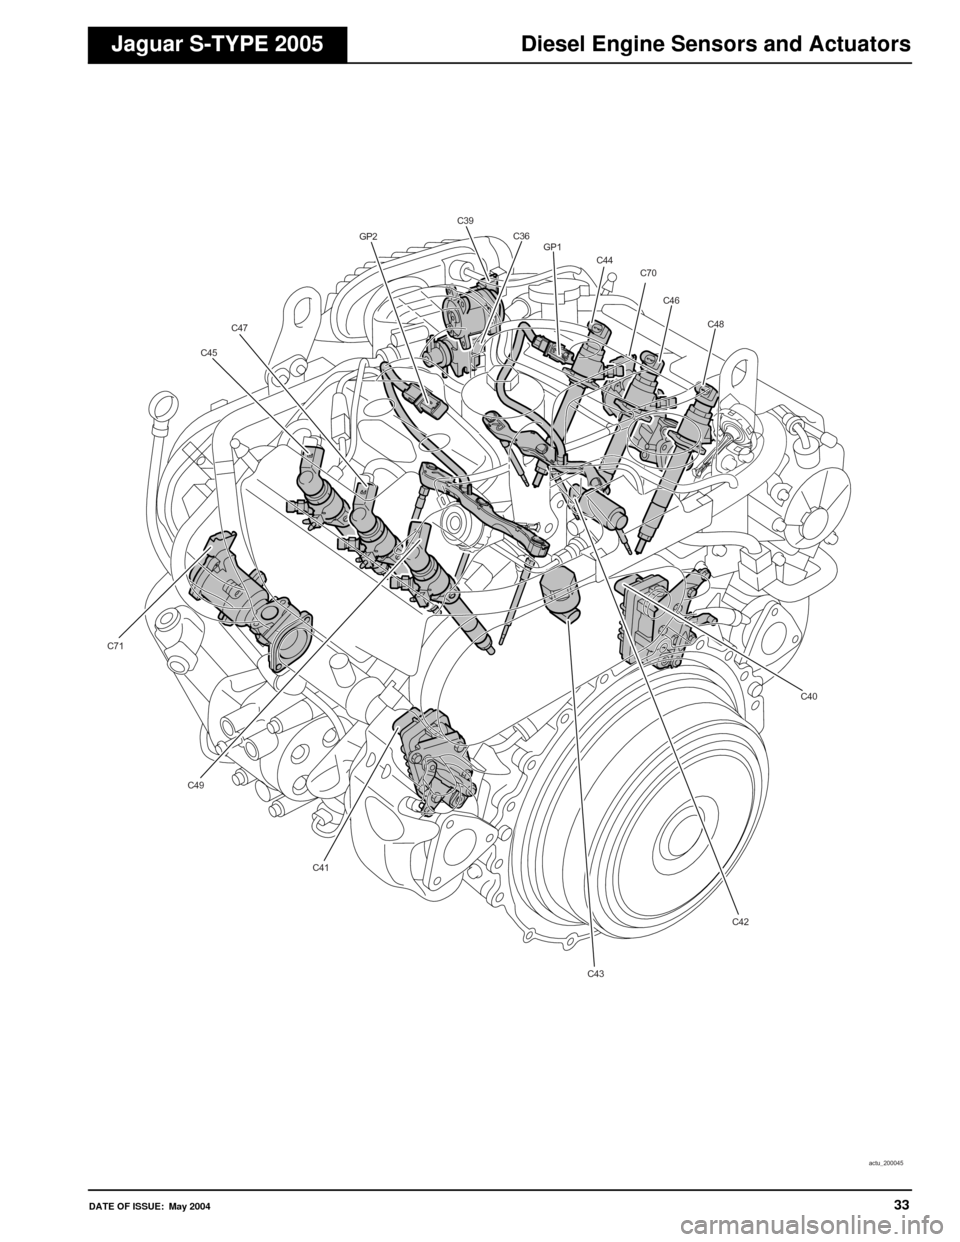 jaguar s type 2005 1 g electrical manual